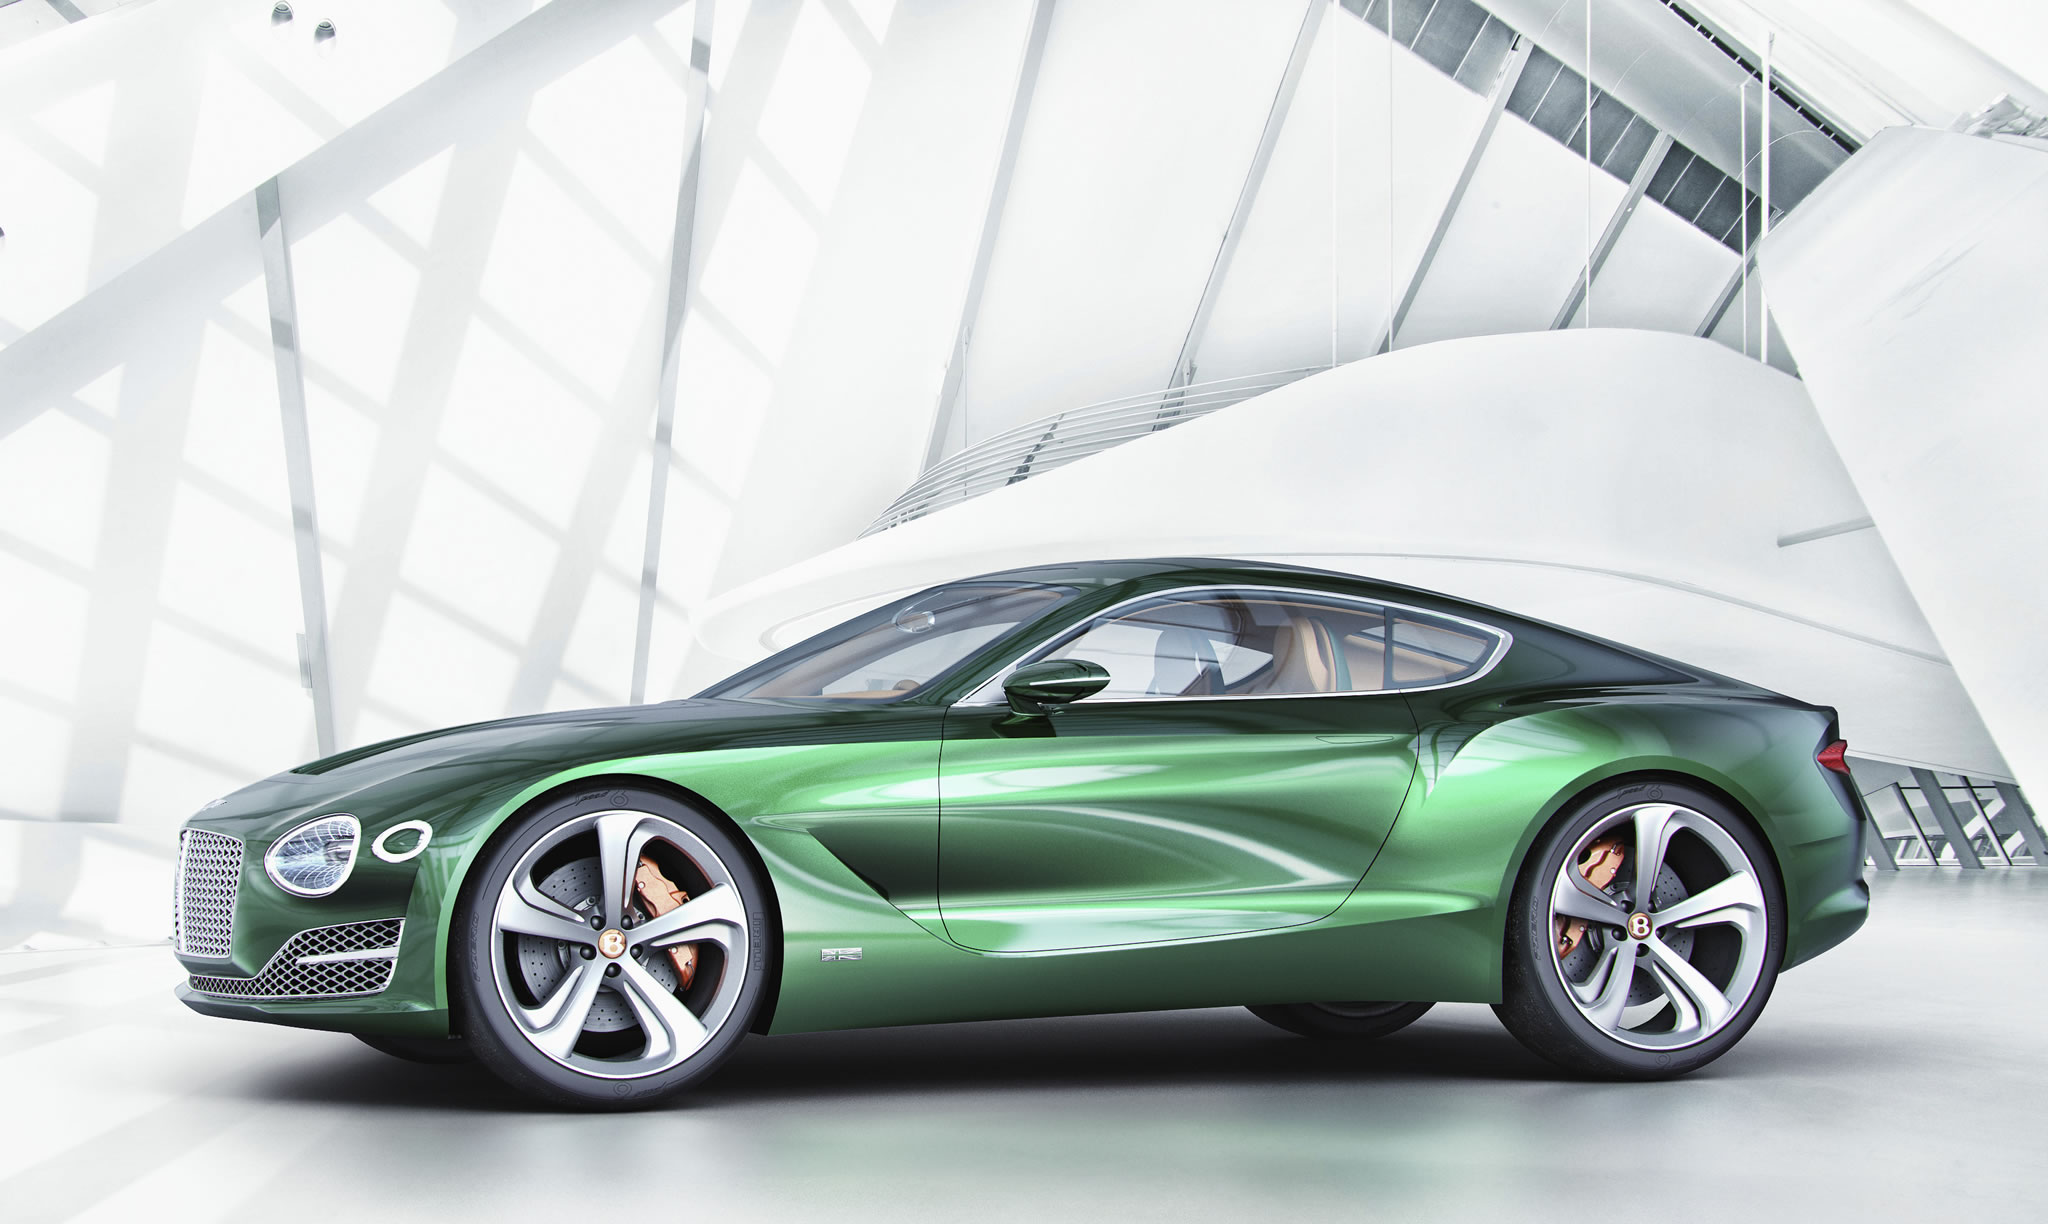 2015 Bentley Exp 10 Speed 6 Concept Front Photo Green